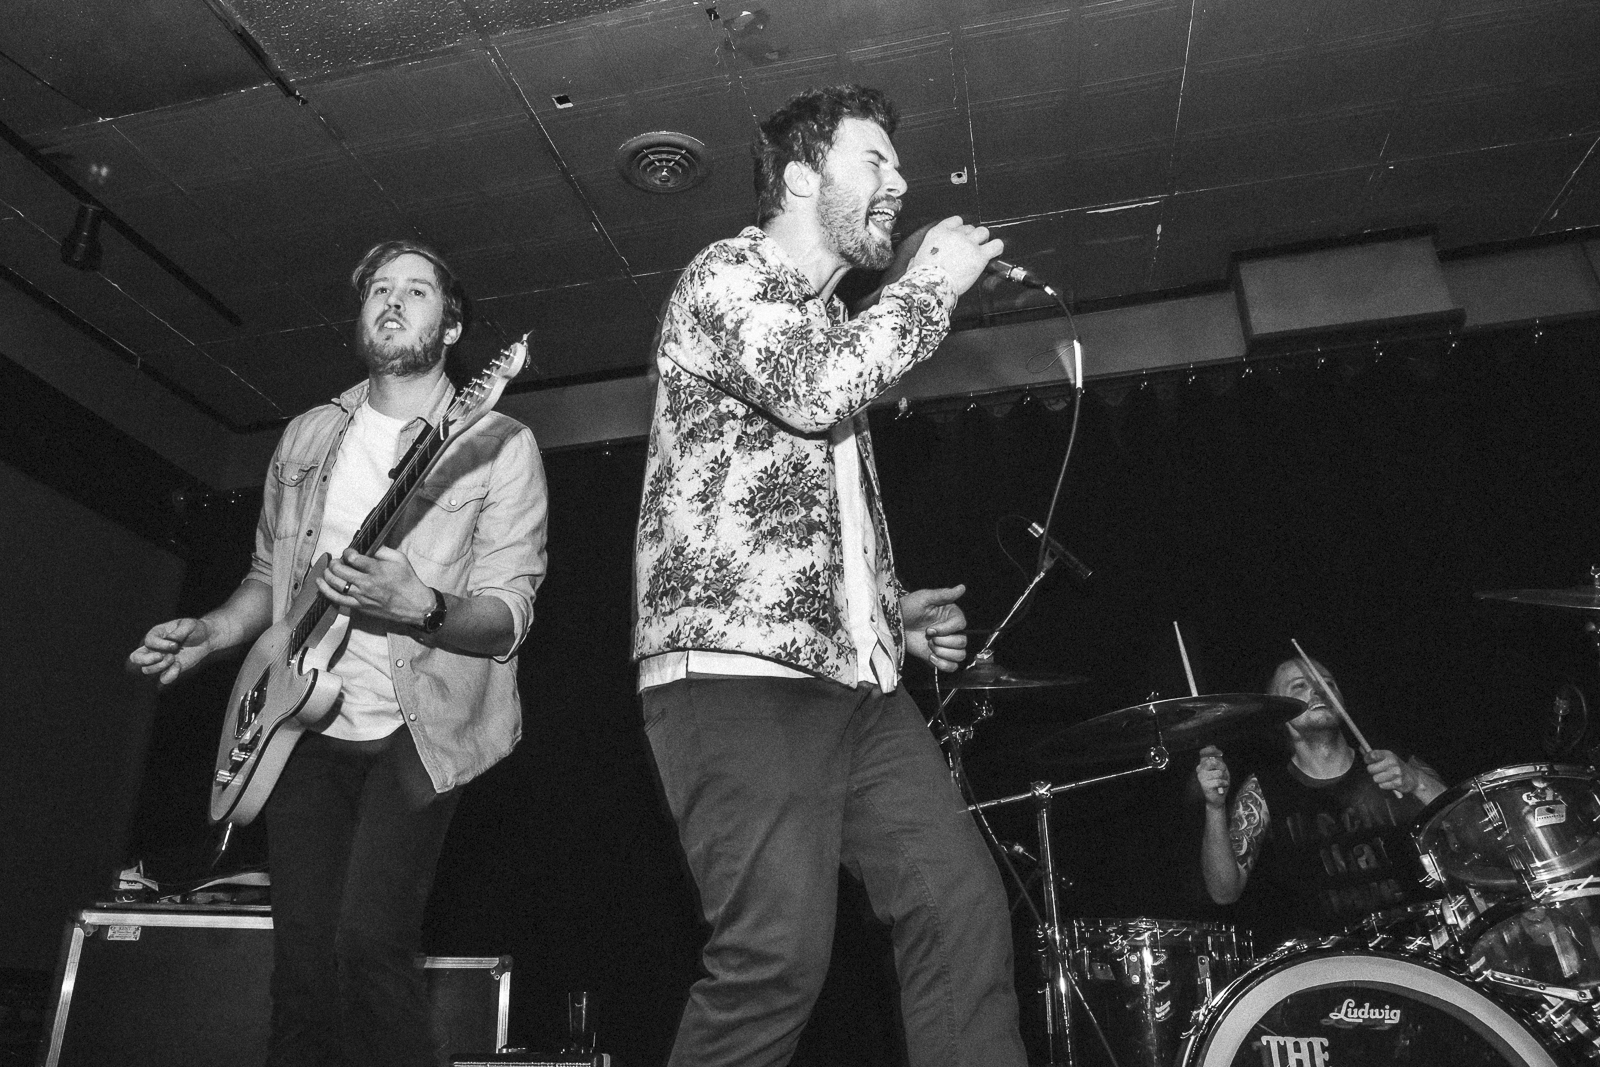 Younger Then at Mr. Goodbar (4/27/19)